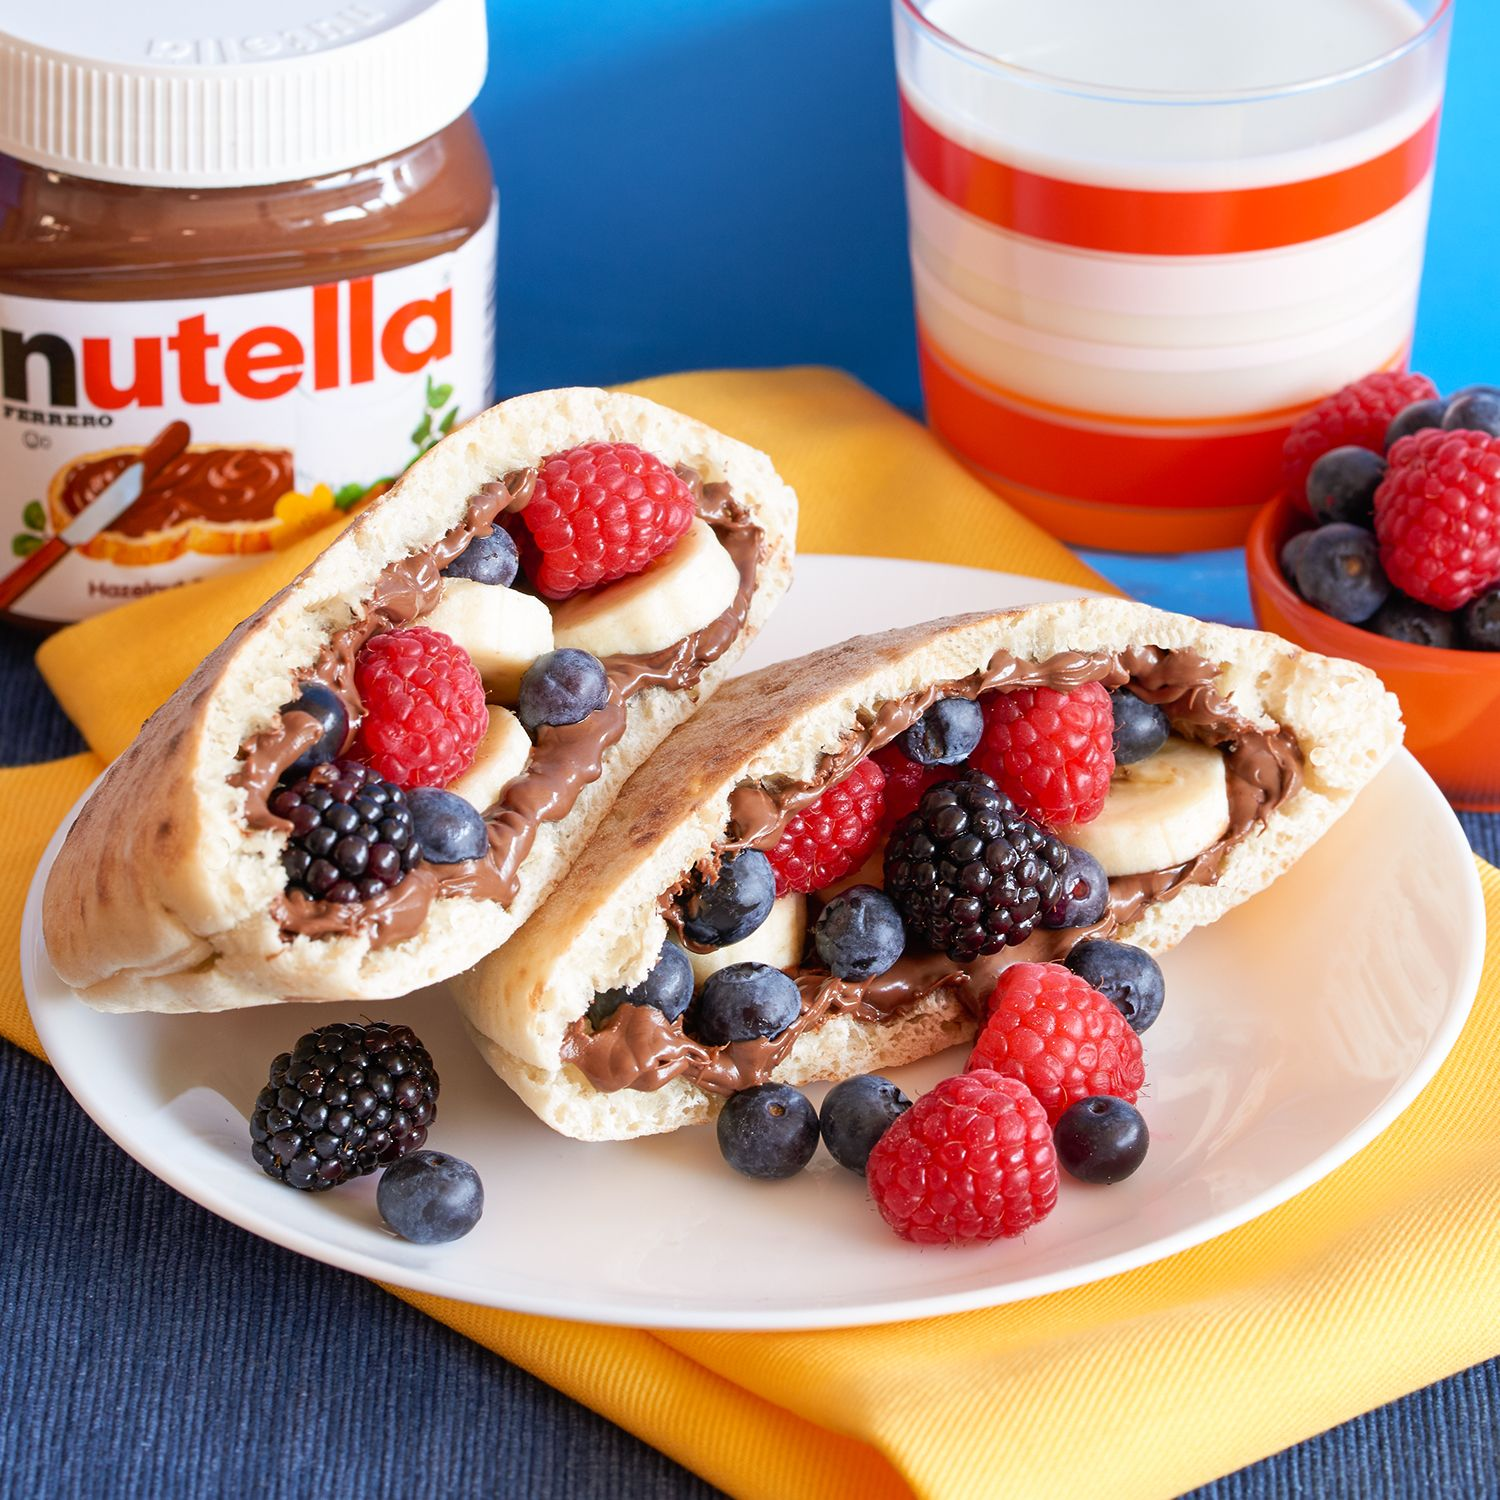 In this easy morning recipe, fun comes in the form of pita pockets with Nutella®. Fill yours with fruit and add a glass of milk for a breakfast that would get any kid out of bed.